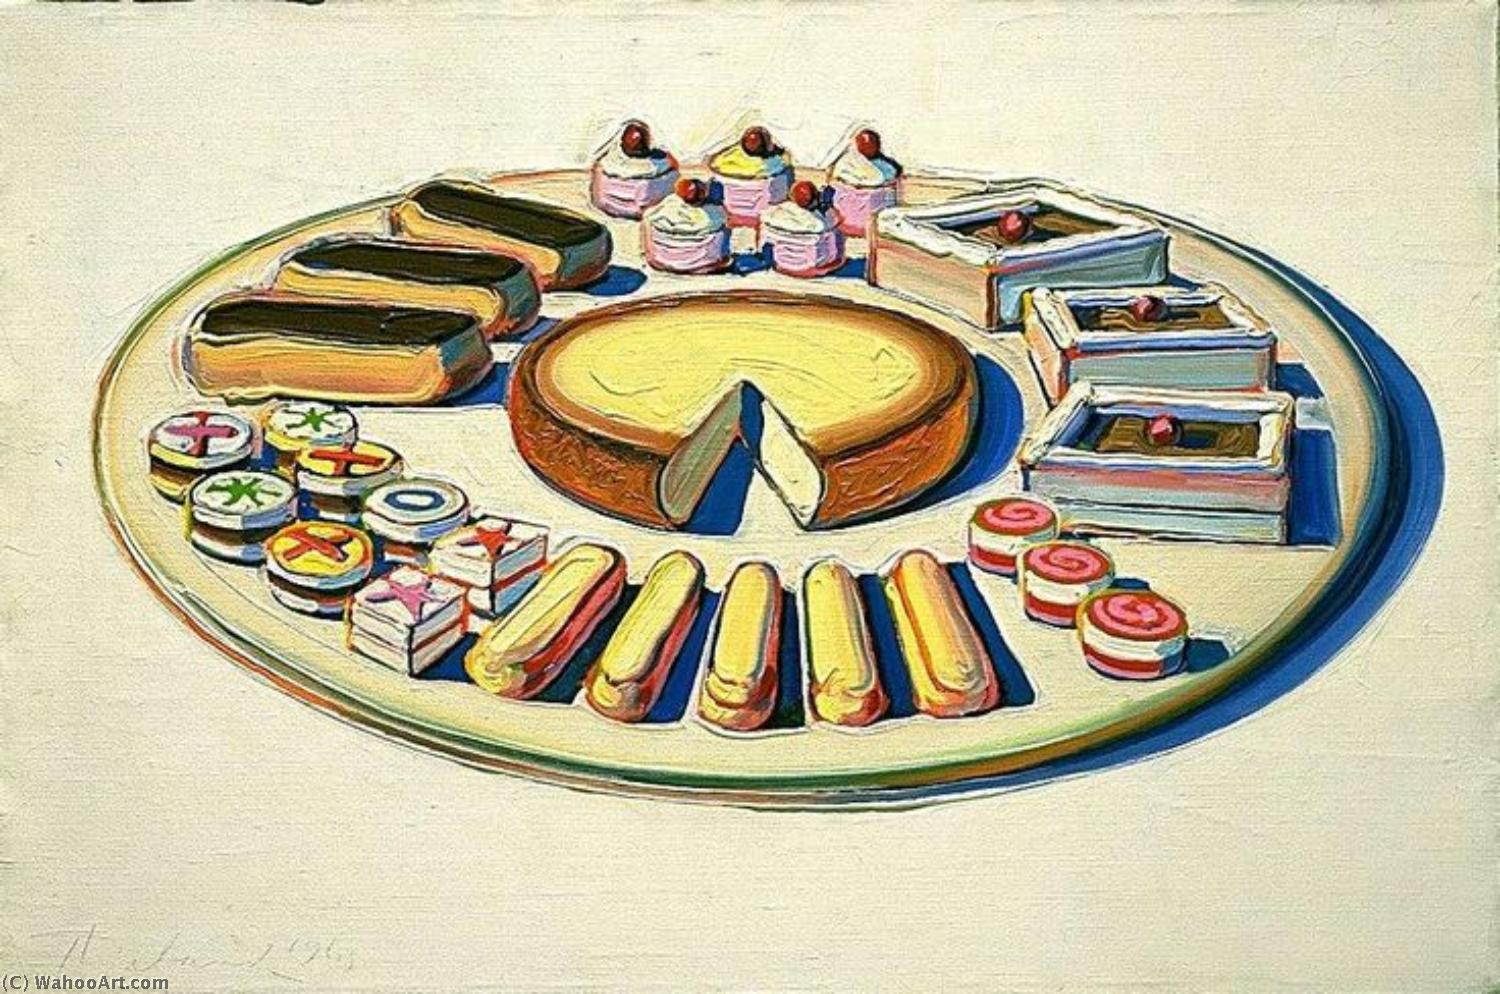 | Pop art by Wayne Thiebaud | Most-Famous-Paintings.com